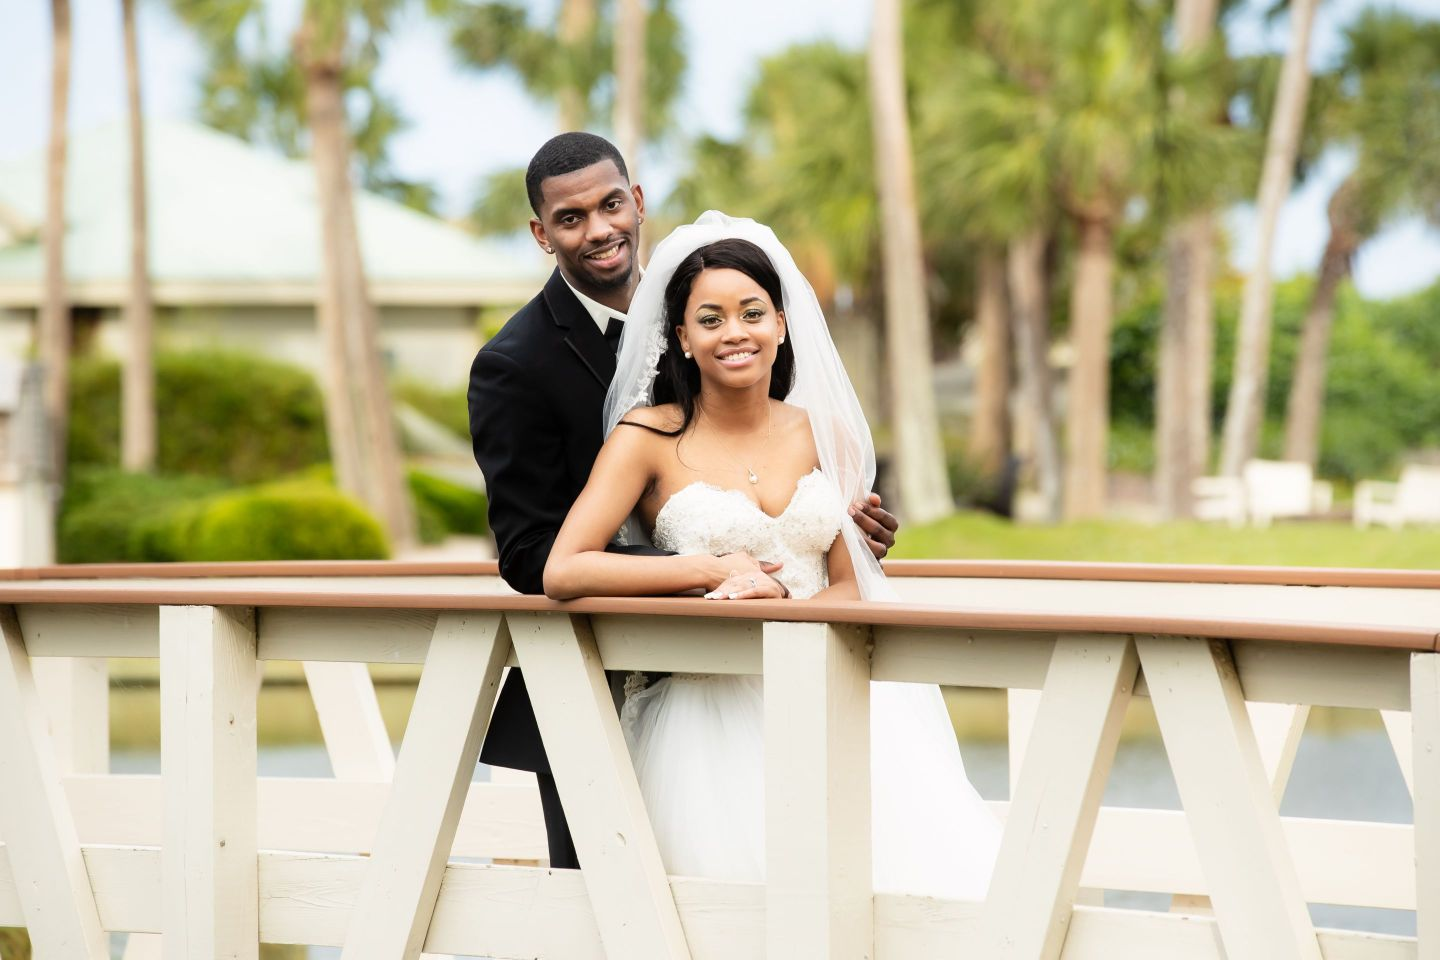 Foster-Wedding-by-Andre-Brown-at-Sonesta-HHI-7-1440x960 Beachfront Wedding Inspiration at the Sonesta Resort Hilton Head Island